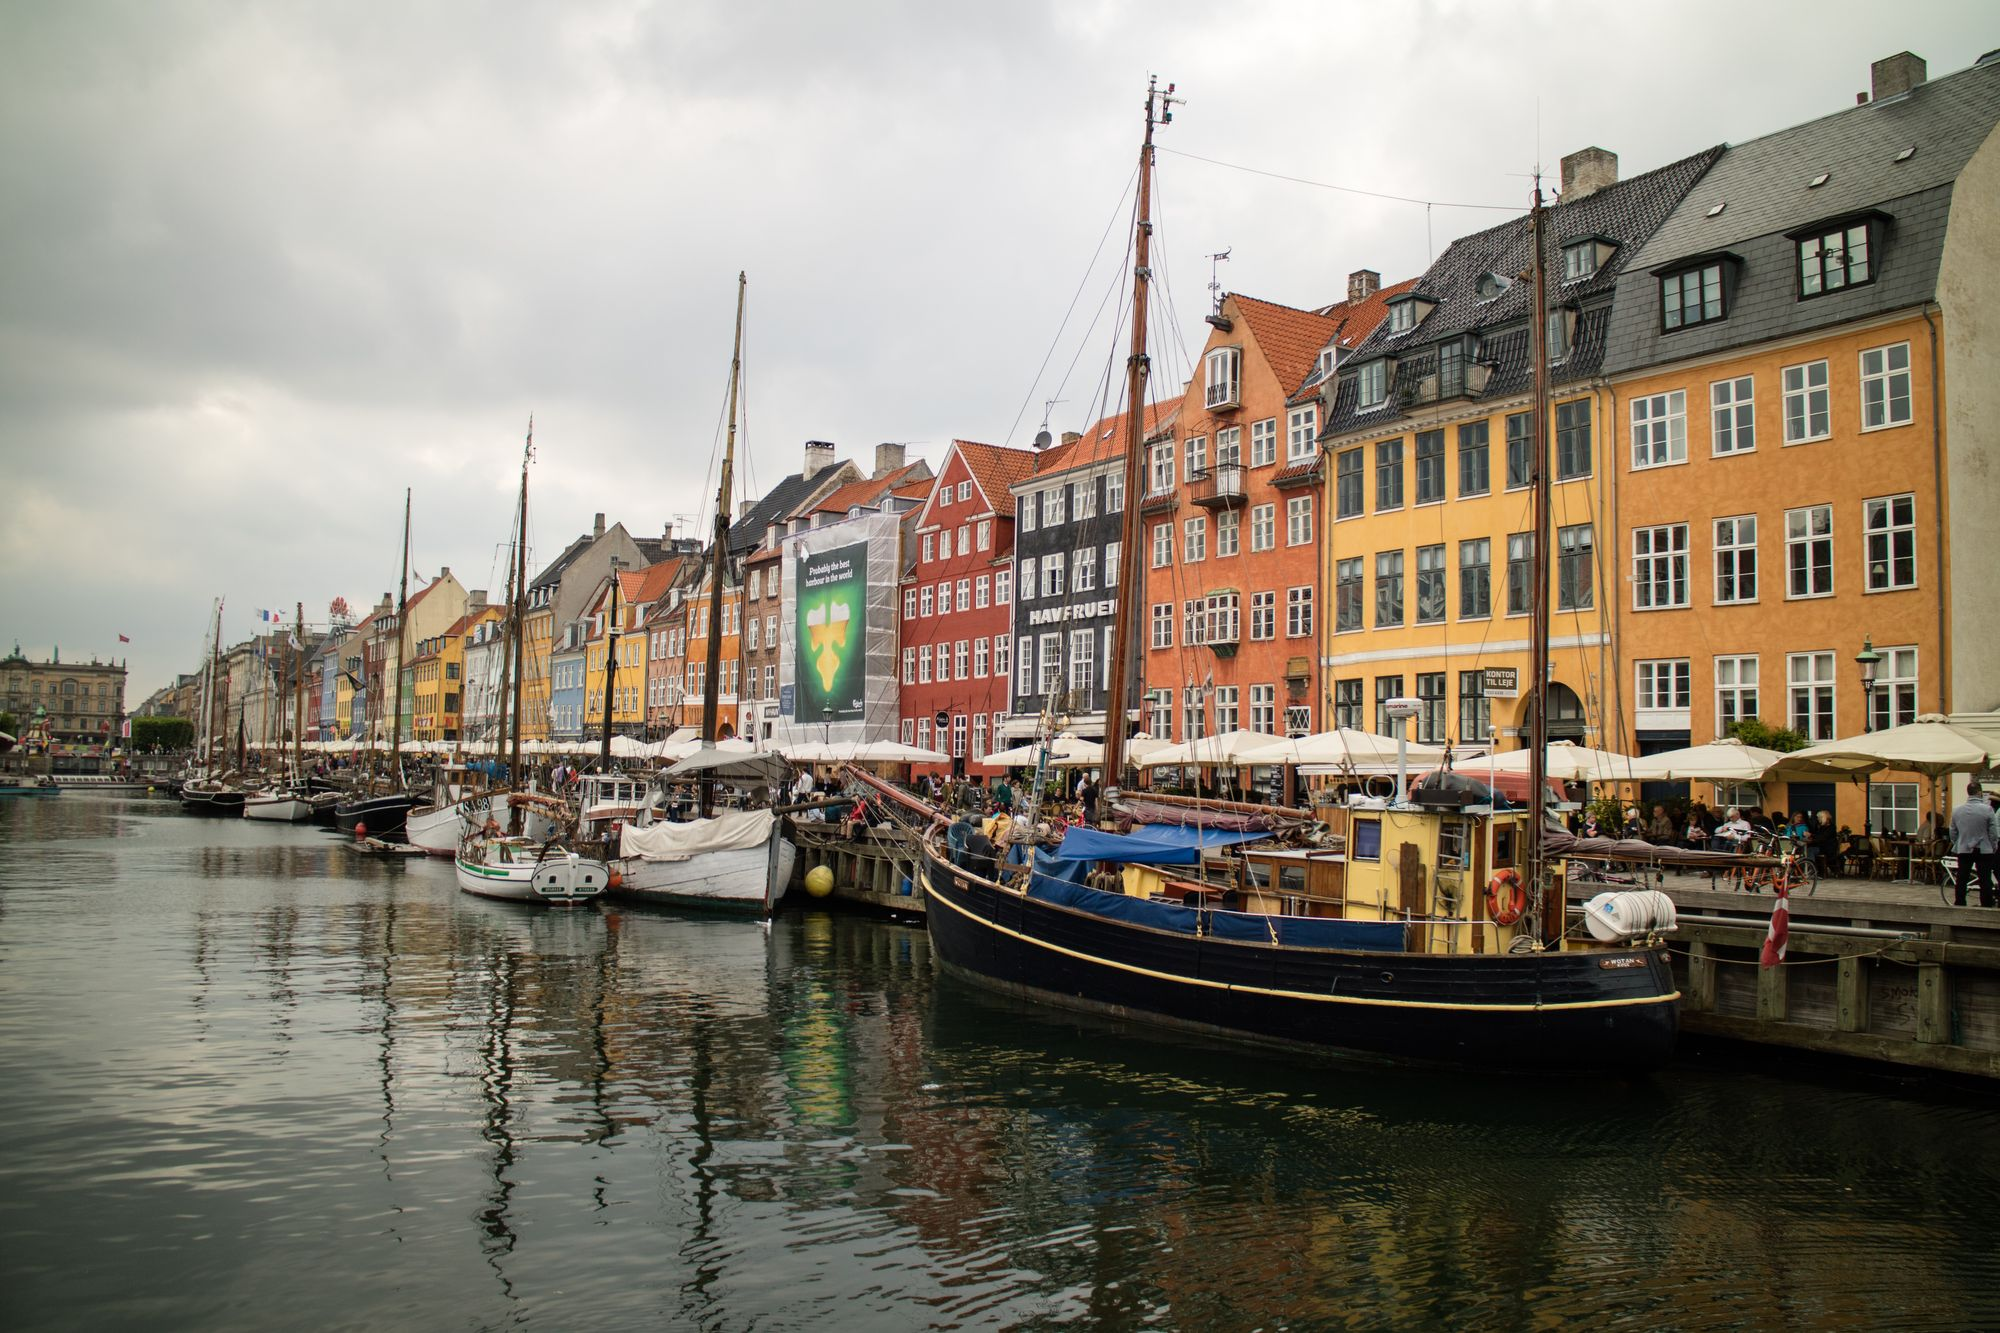 nyhavn, of course